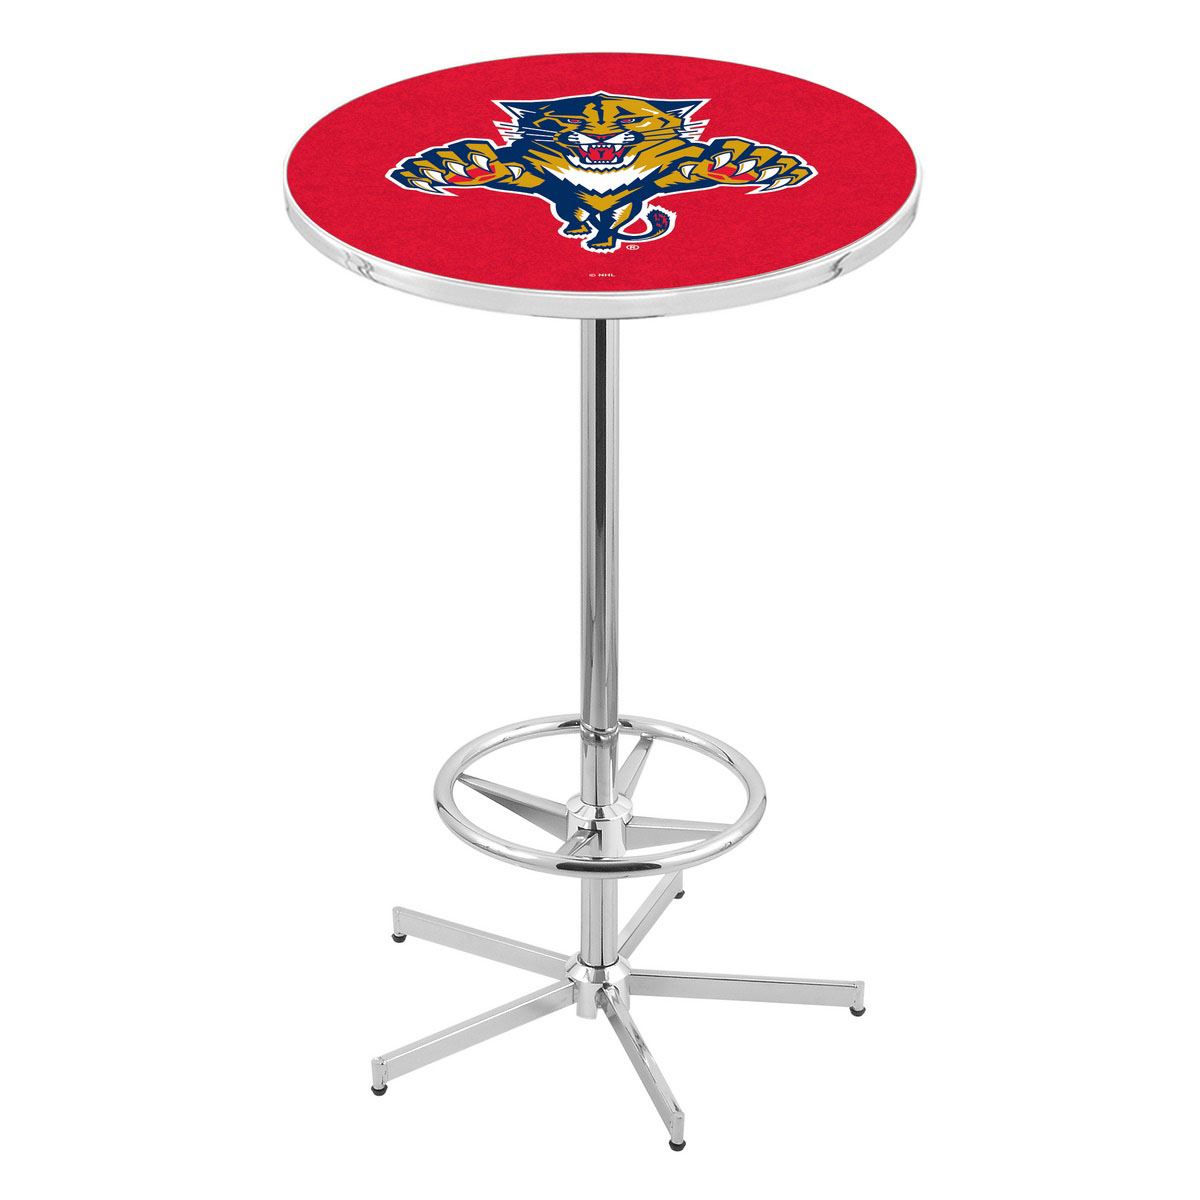 Excellent Chrome Florida Panthers Pub Table Product Photo